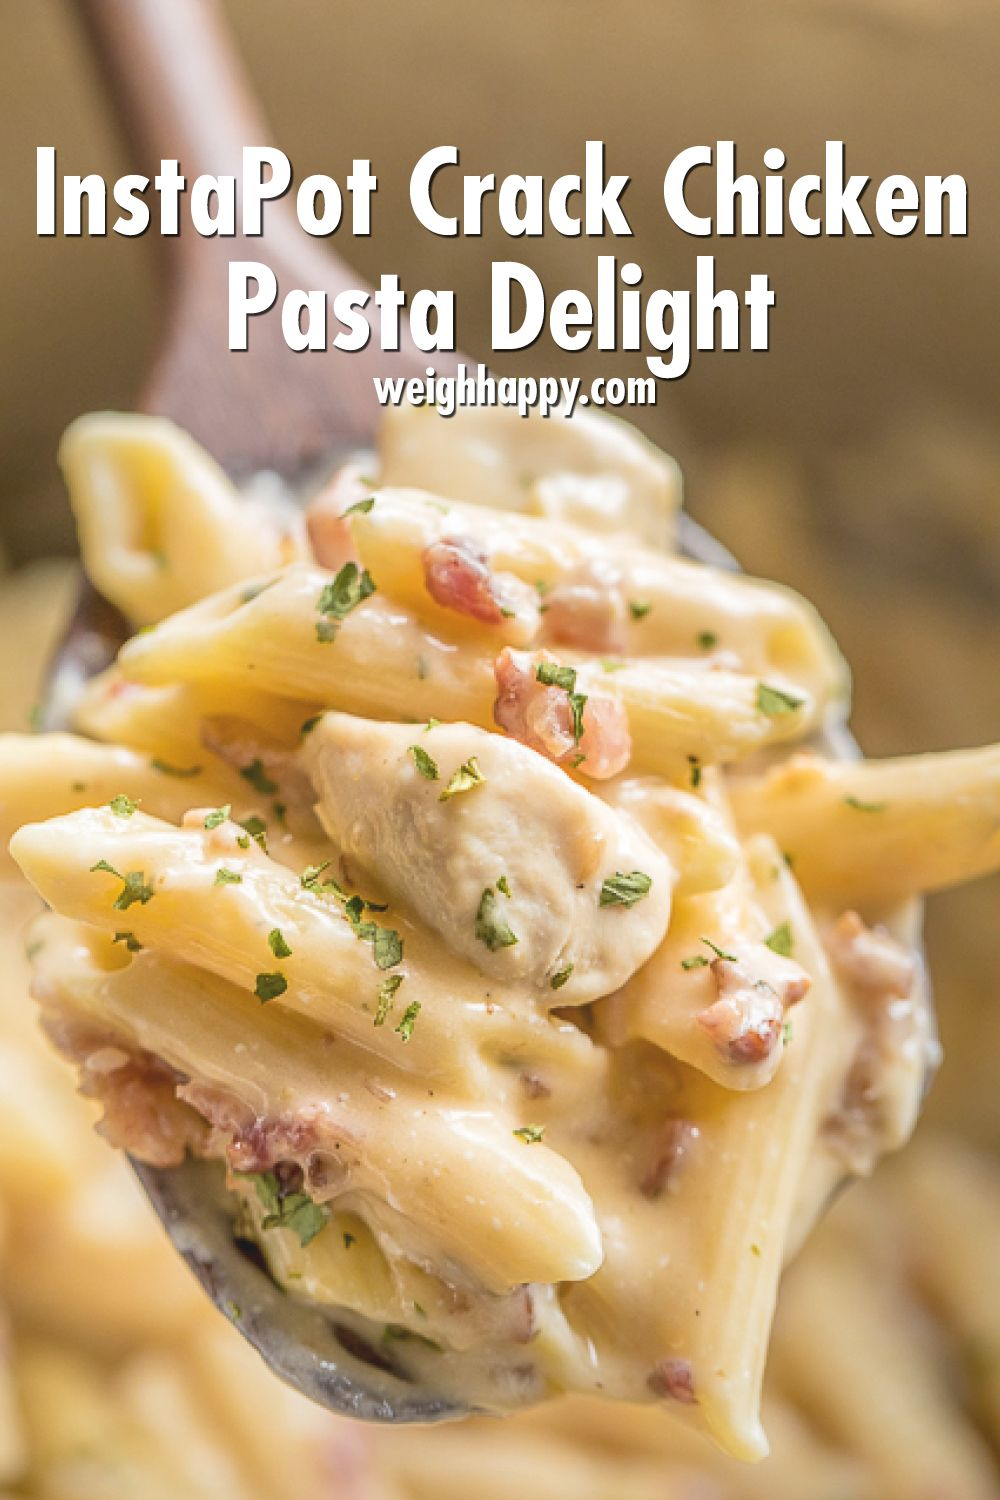 InstaPot Crack Chicken Pasta Delight Family Will Love - To Better Health